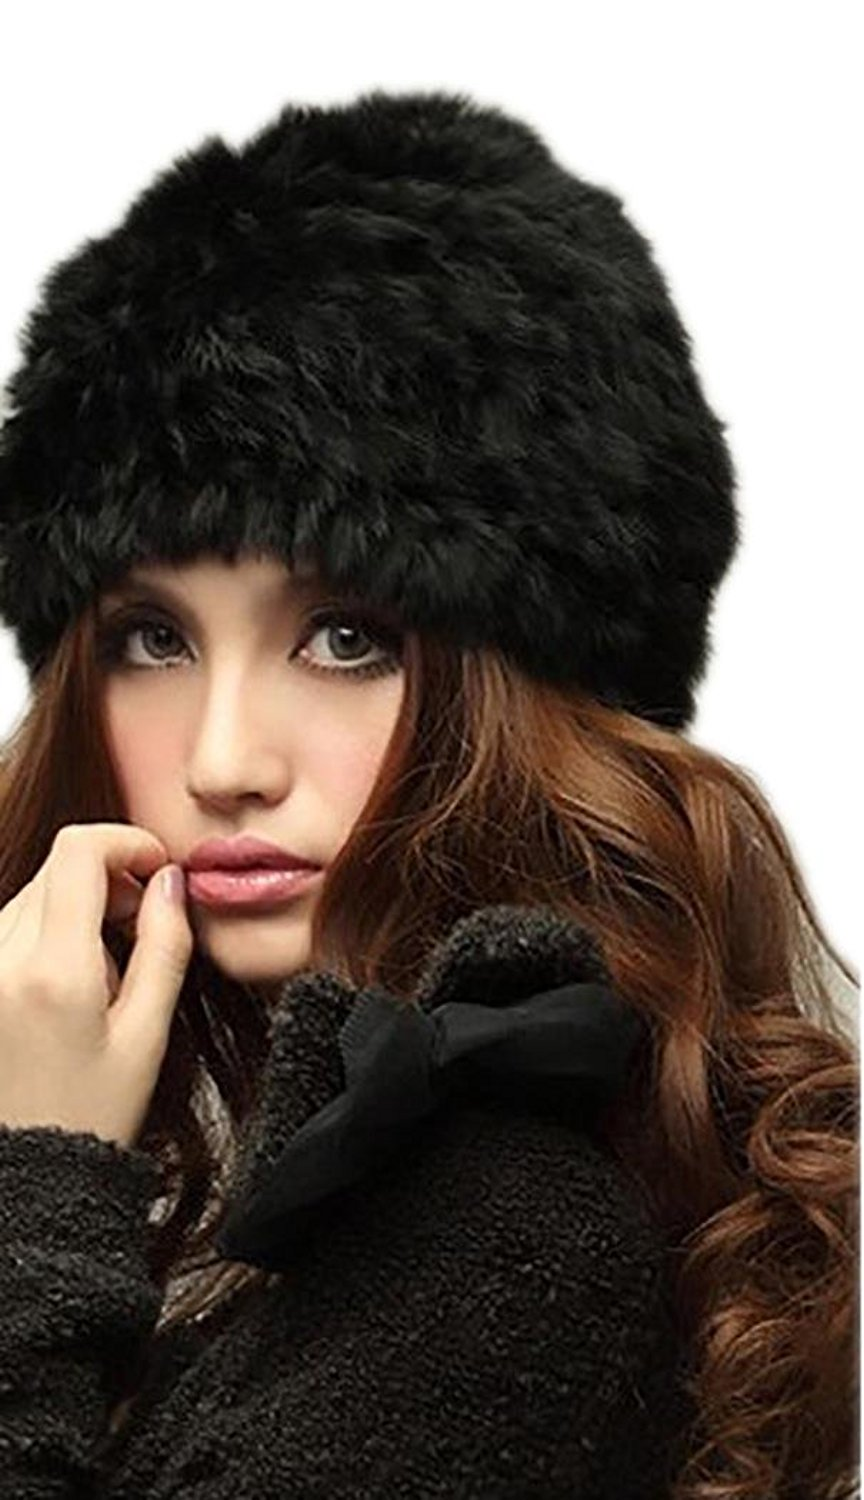 75d37aac760 Get Quotations · Veenajo Womens Winter Hat Knitted Rabbit Fur Hats Beanie  Hats